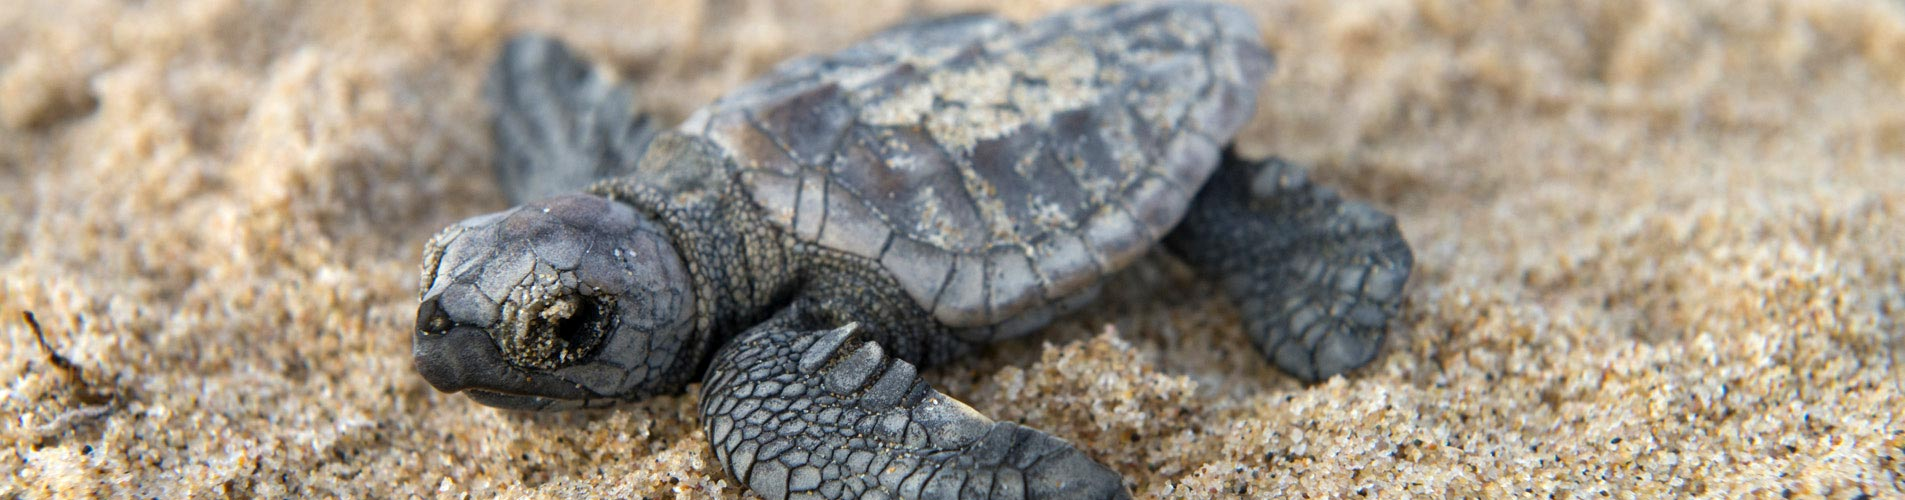 Mozambique Safari Turtle Hatchling